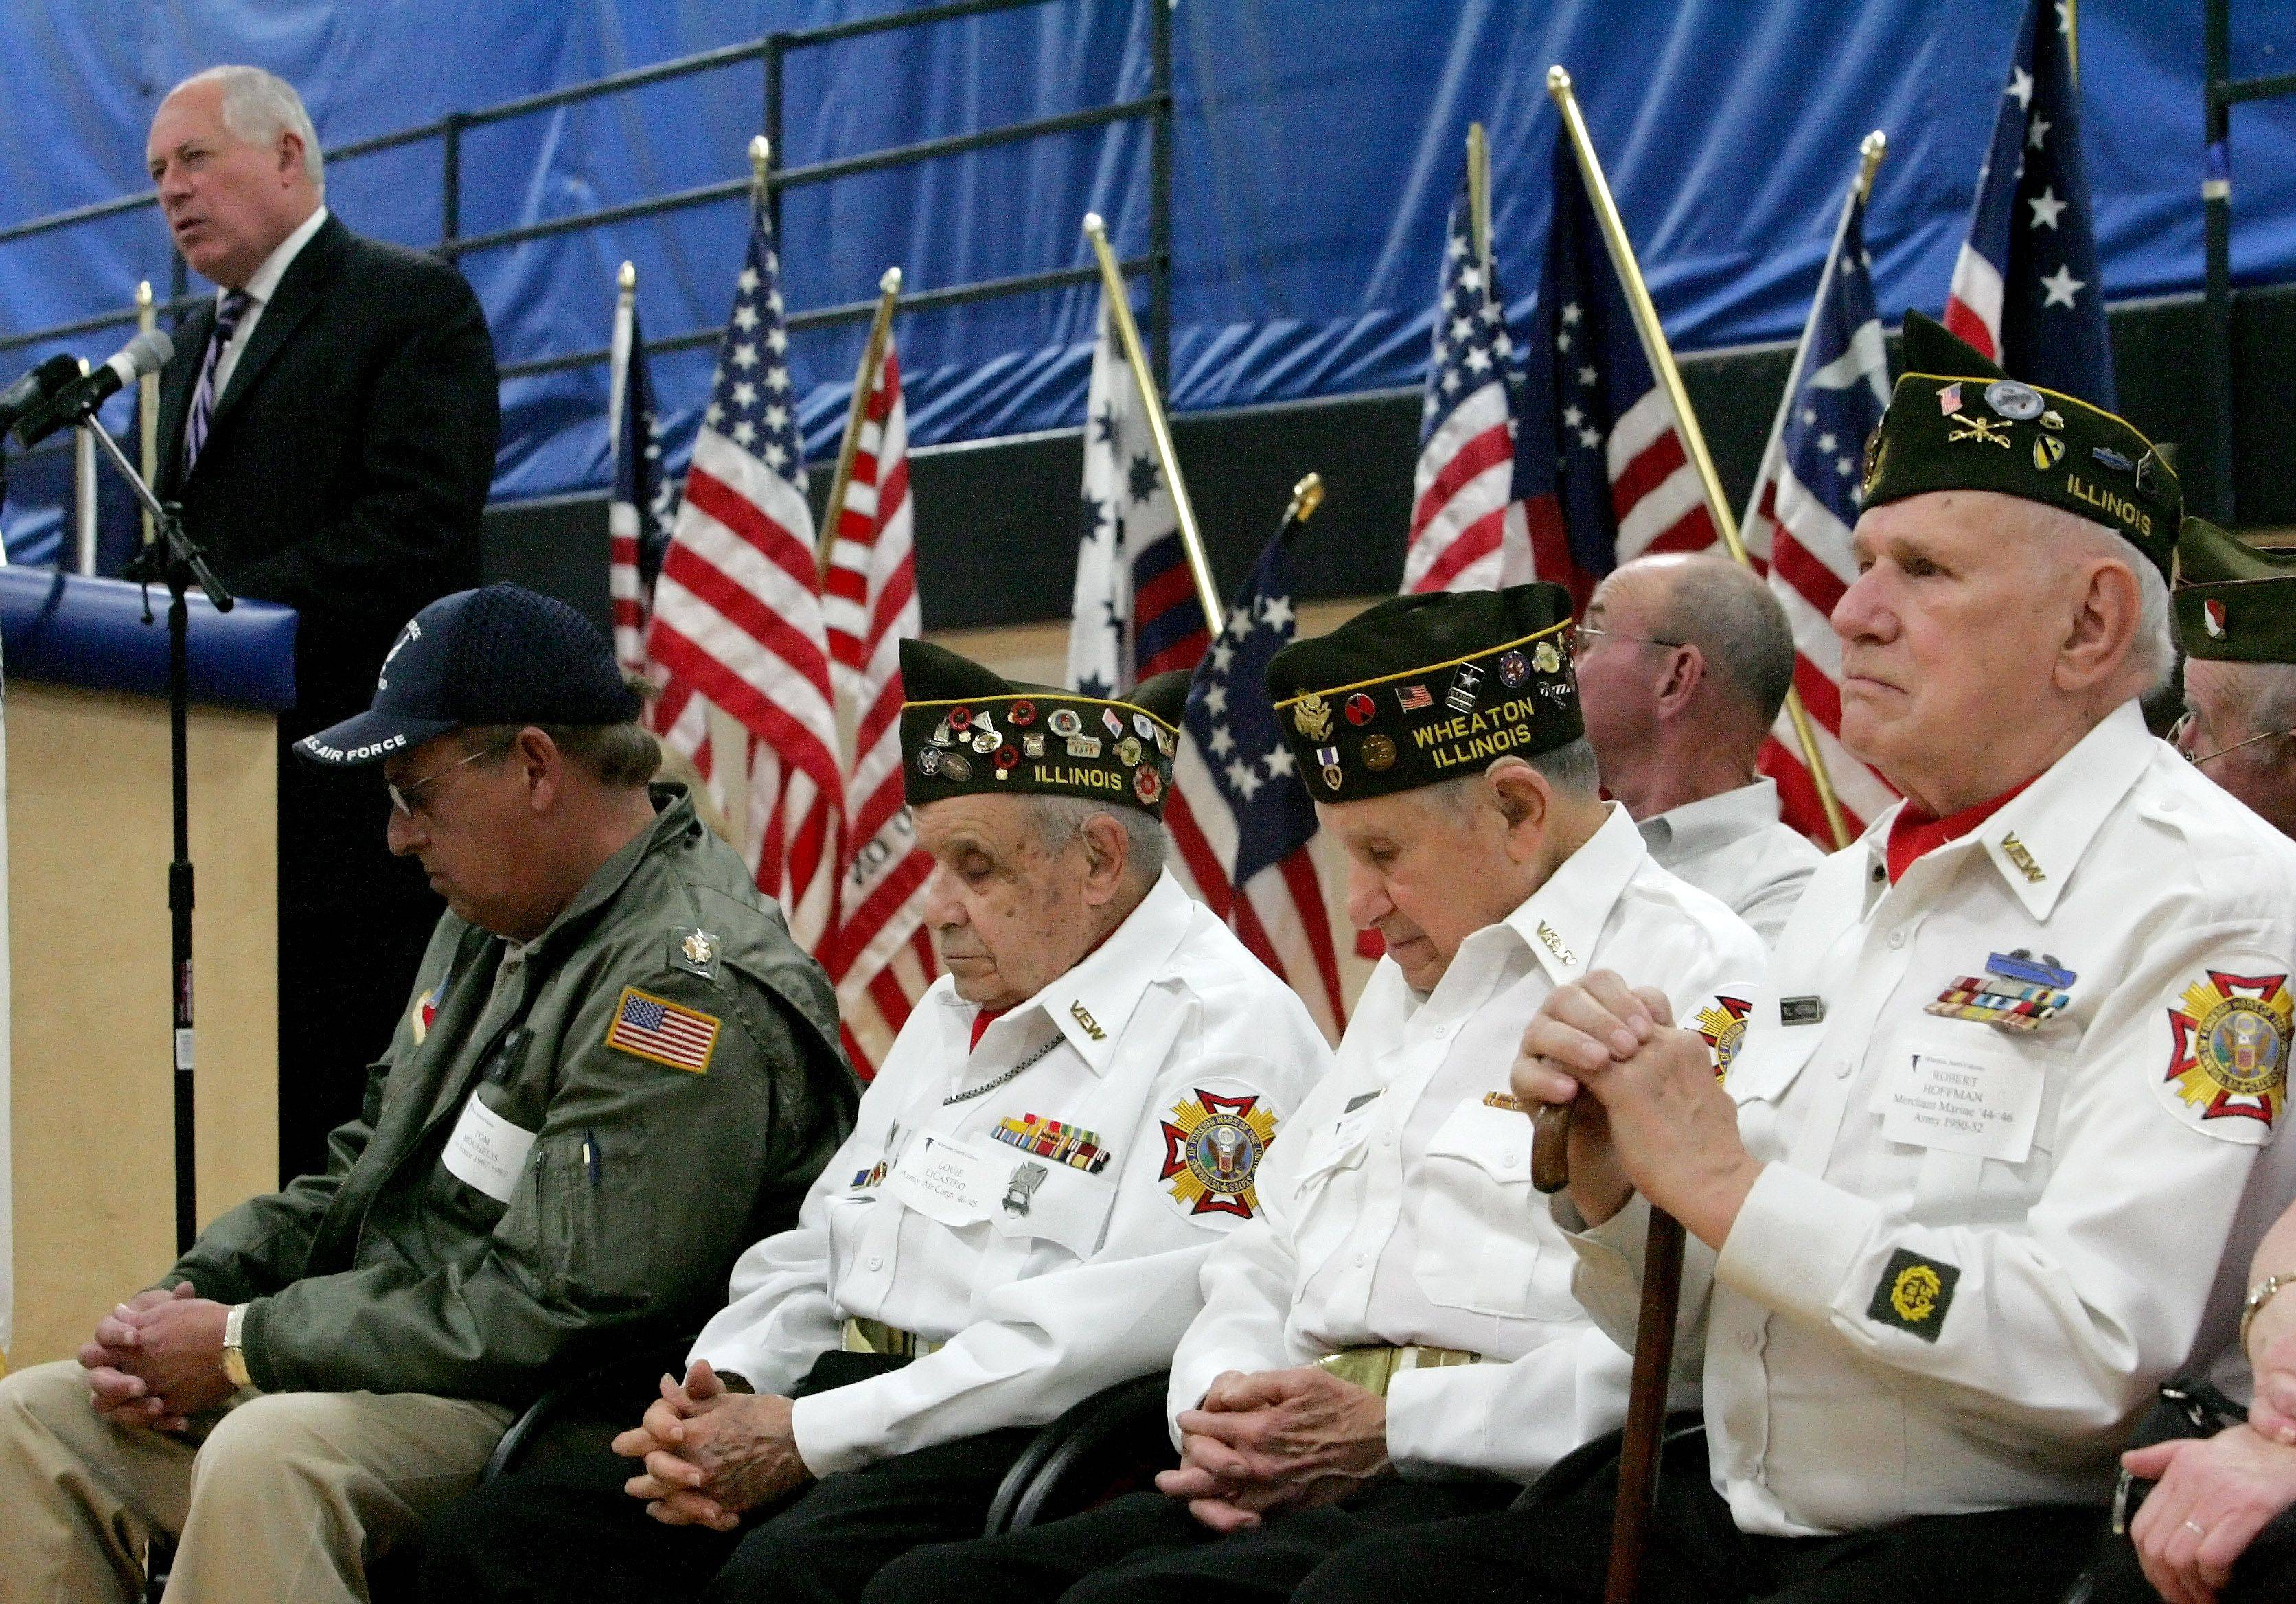 Veterans Tom Mouhelis, Louie Celli, Louie Licastro and Robert Hoffman listen as Gov. Pat Quinn speaks at a Veterans Day event honoring Medal of Honor recipient Staff Sgt. Robert Miller at Wheaton North High School on Thursday.